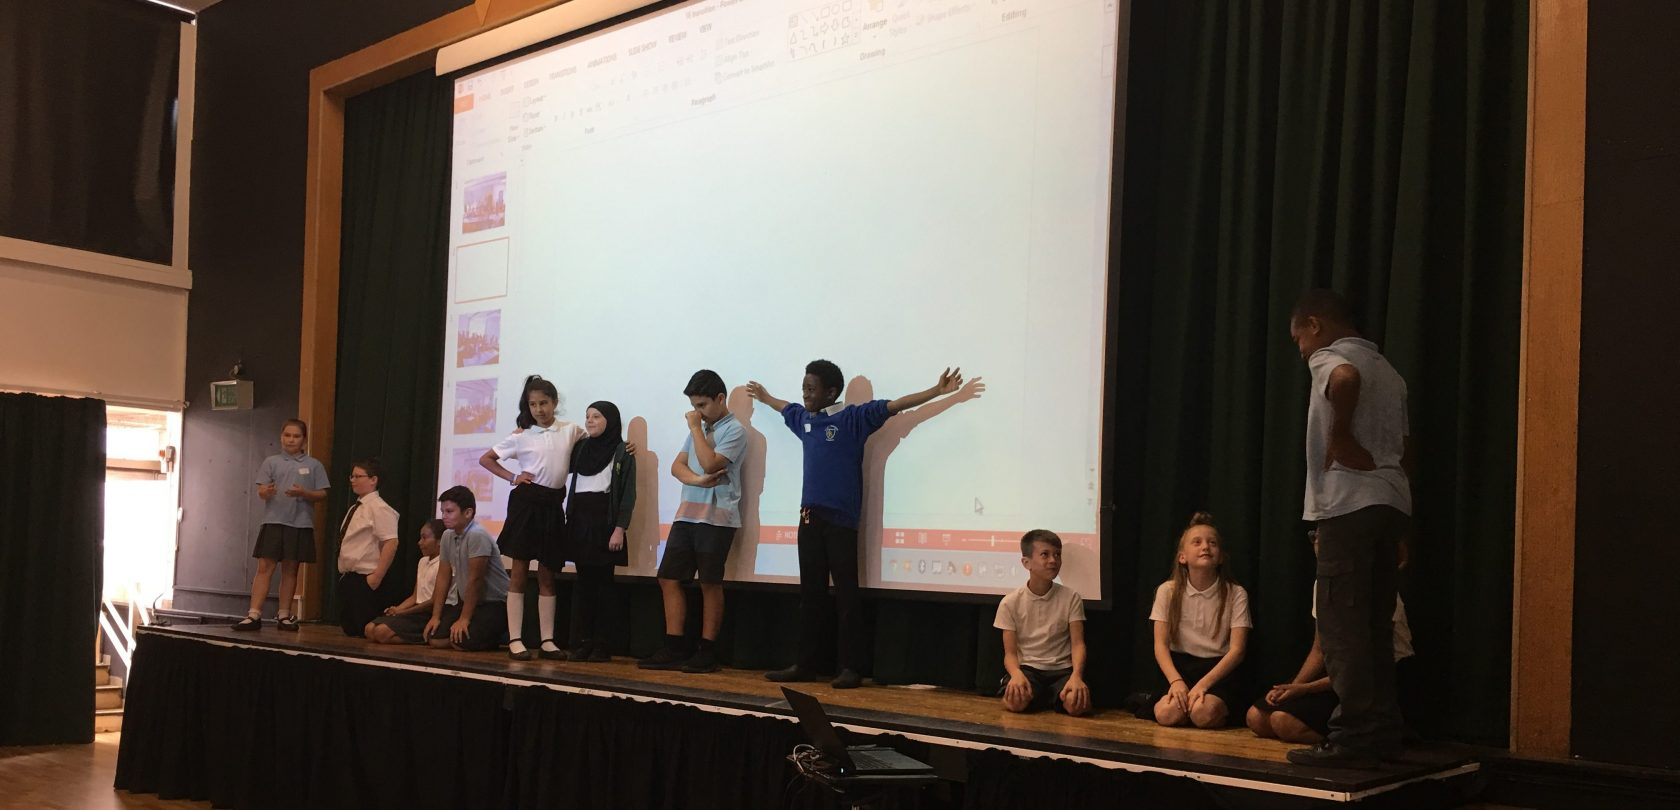 Positive Feedback about our Year 6 – 7 Transition